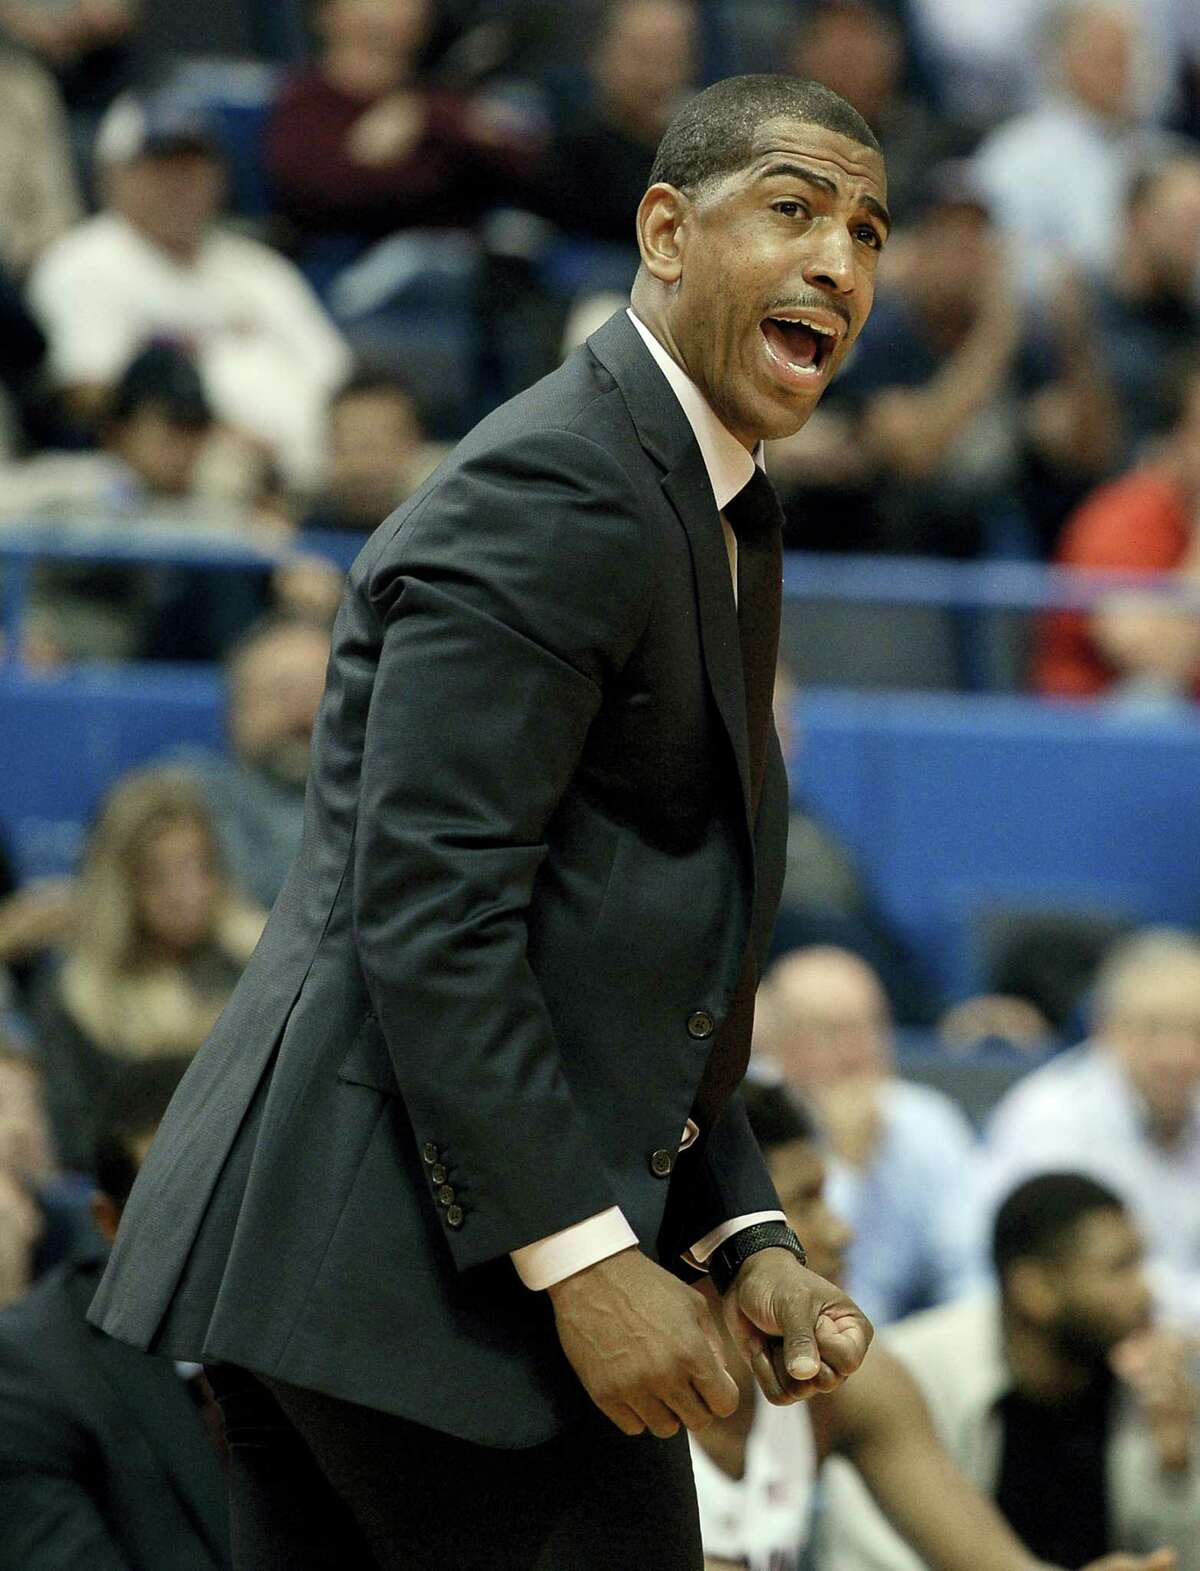 Connecticut head coach Kevin Ollie reacts in the first half of an NCAA college basketball game against Boston University, Wednesday, Nov. 30, 2016, in Hartford, Conn. (AP Photo/Jessica Hill)